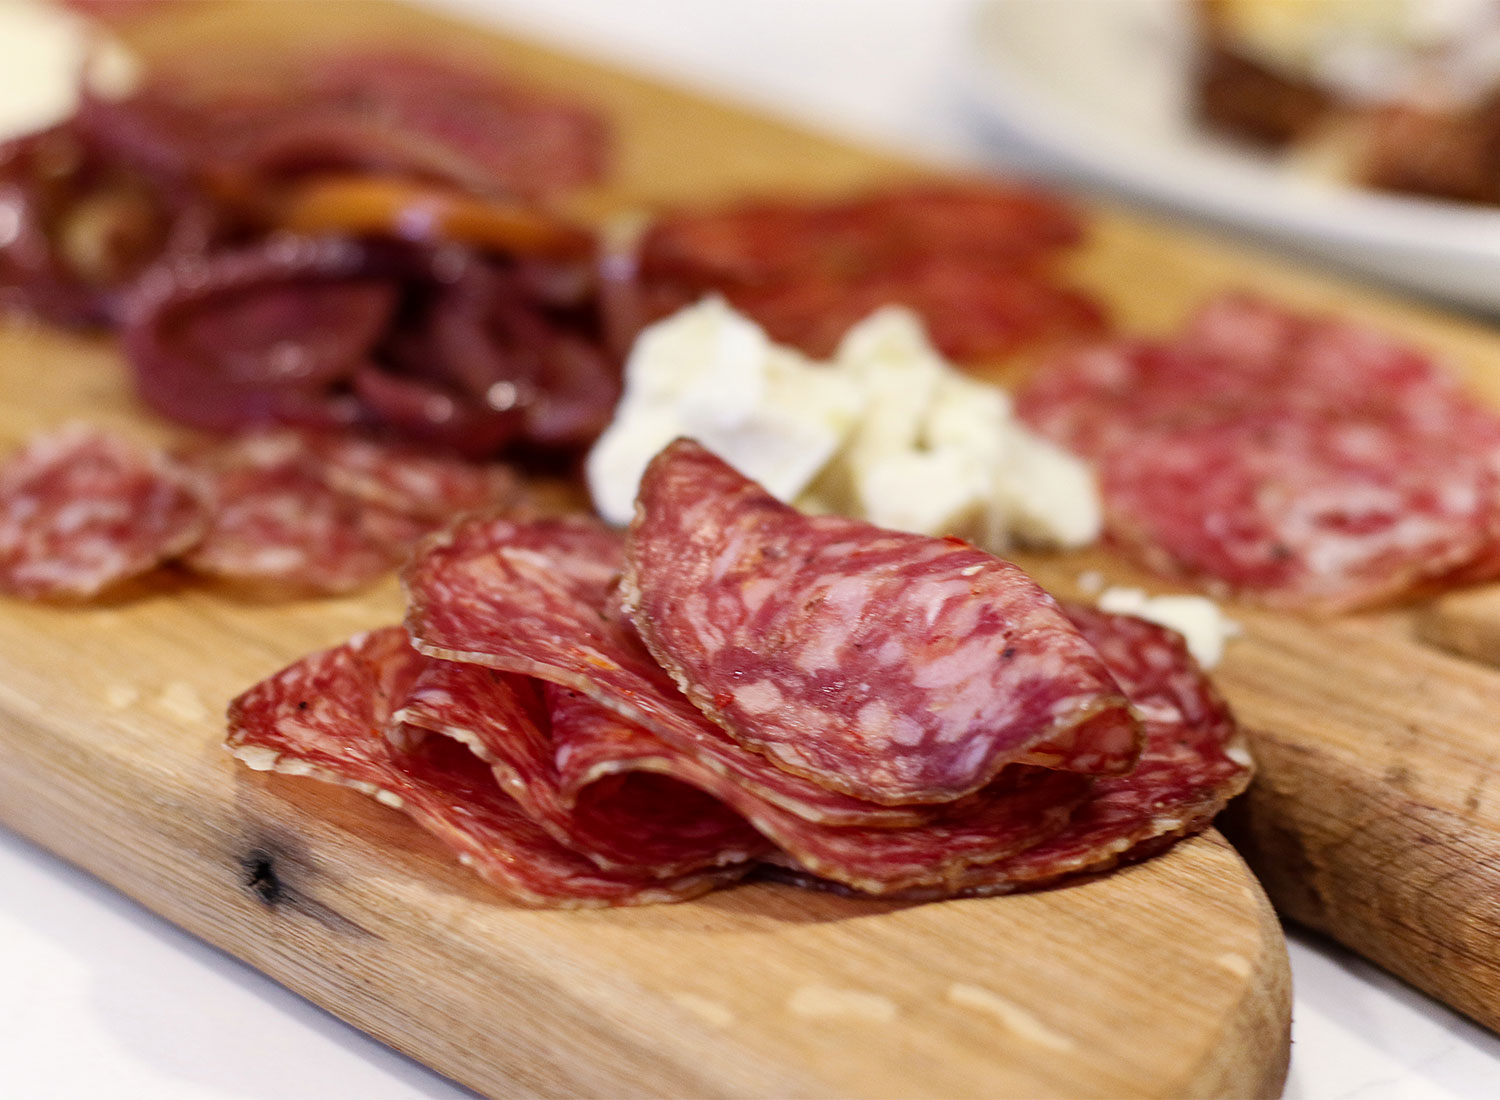 Pete Seghesio's Journeyman Meat Co in Healdsburg features wine tasting, homemade salumi, a butcher sho and more.